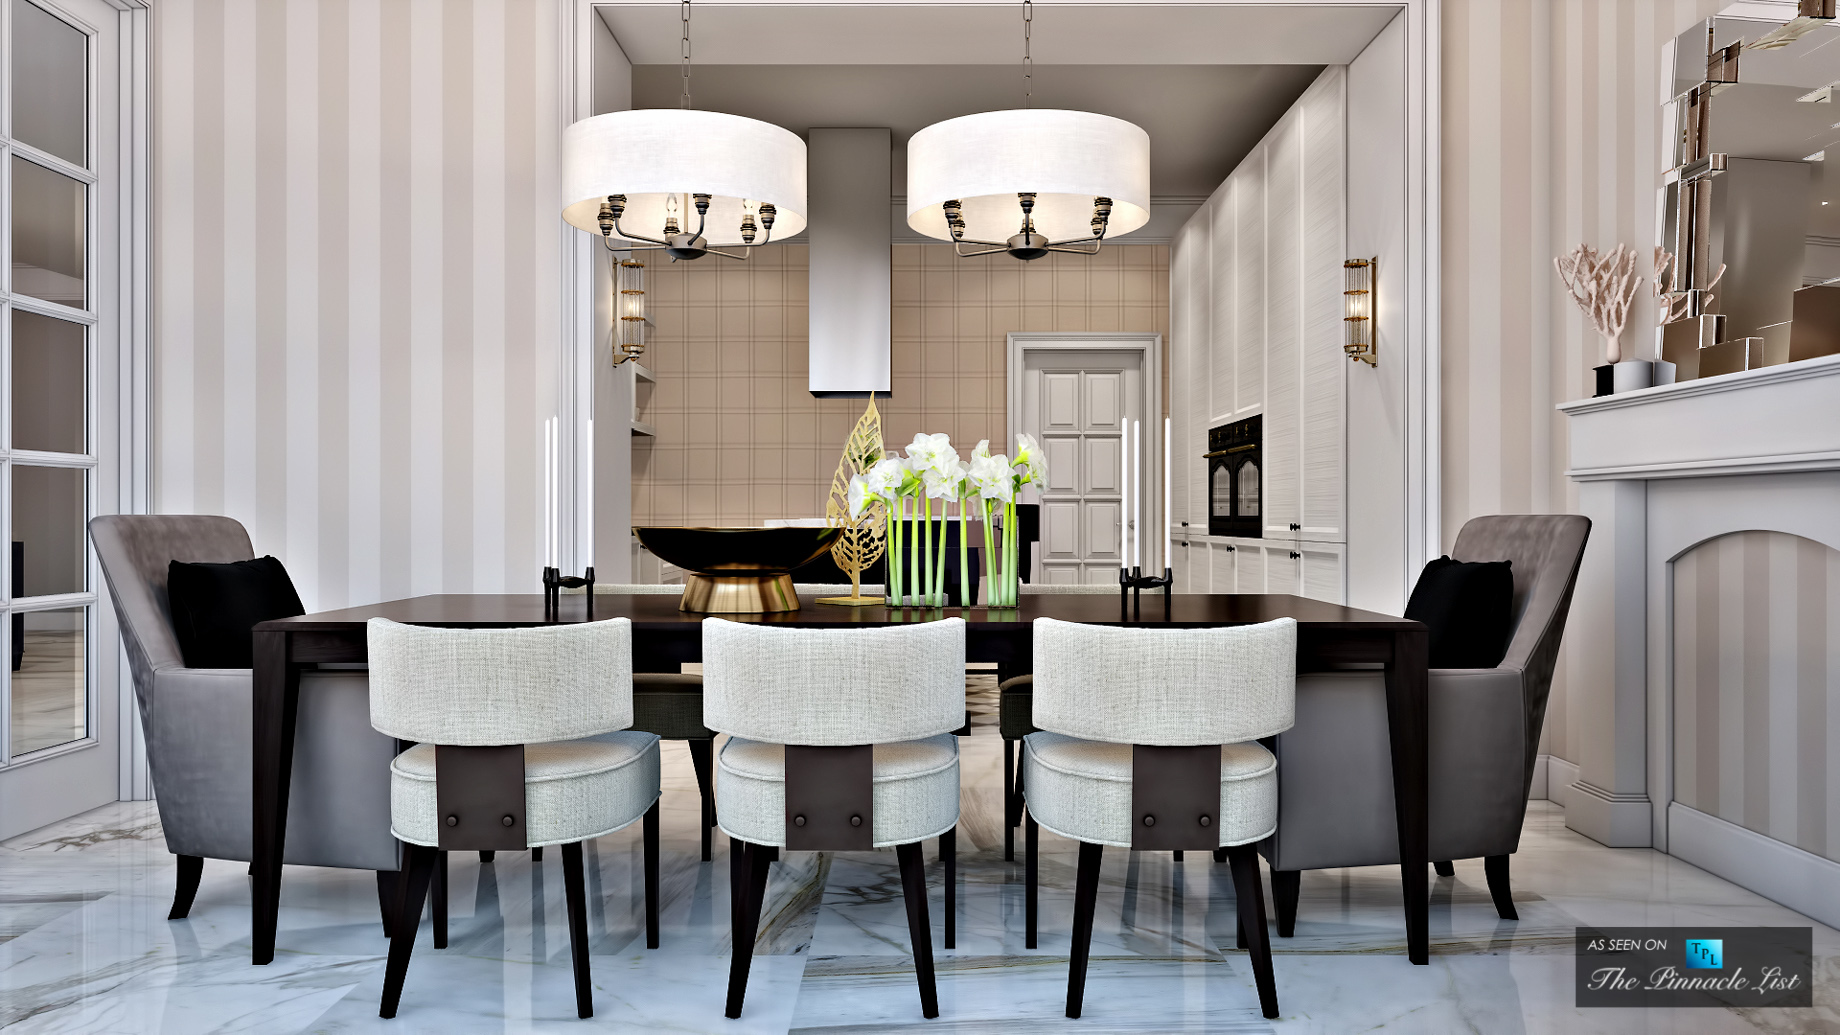 Reconsider Decor Elements - Luxury Home Design - 3 Strategies to Create Chic Modern Interiors